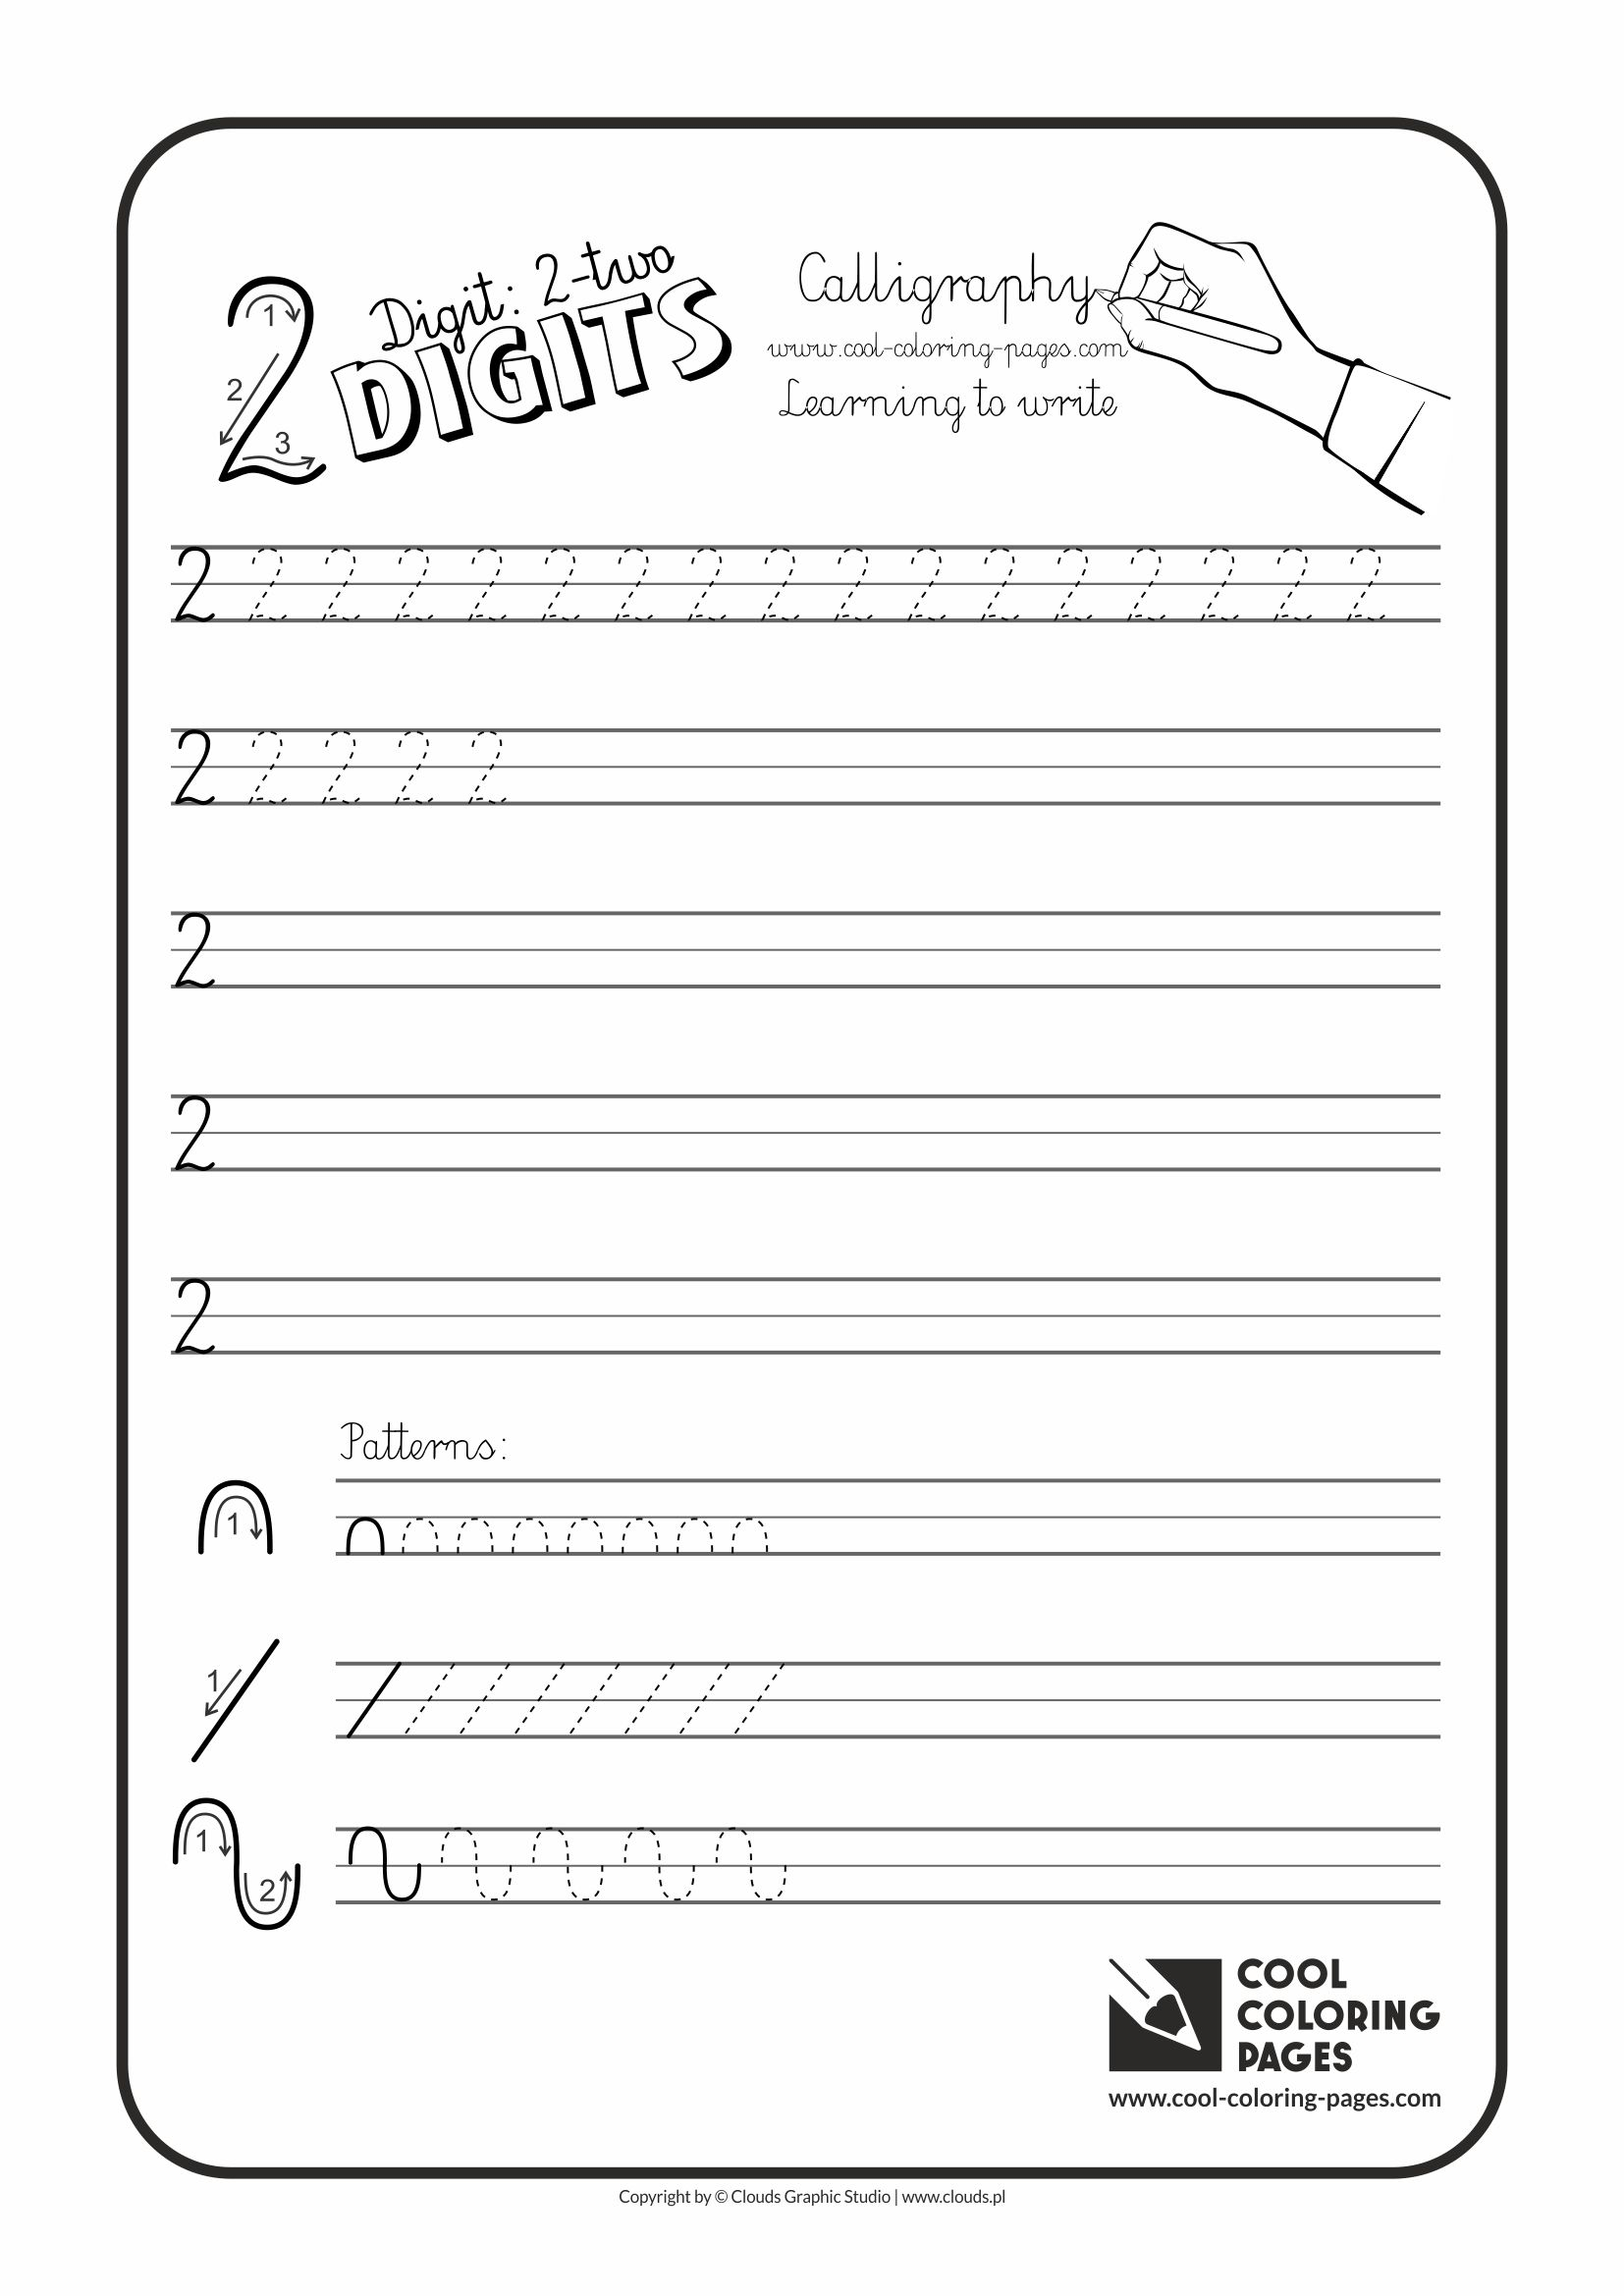 Cool Coloring Pages / Calligraphy / Digit 2 / Handwriting for kids